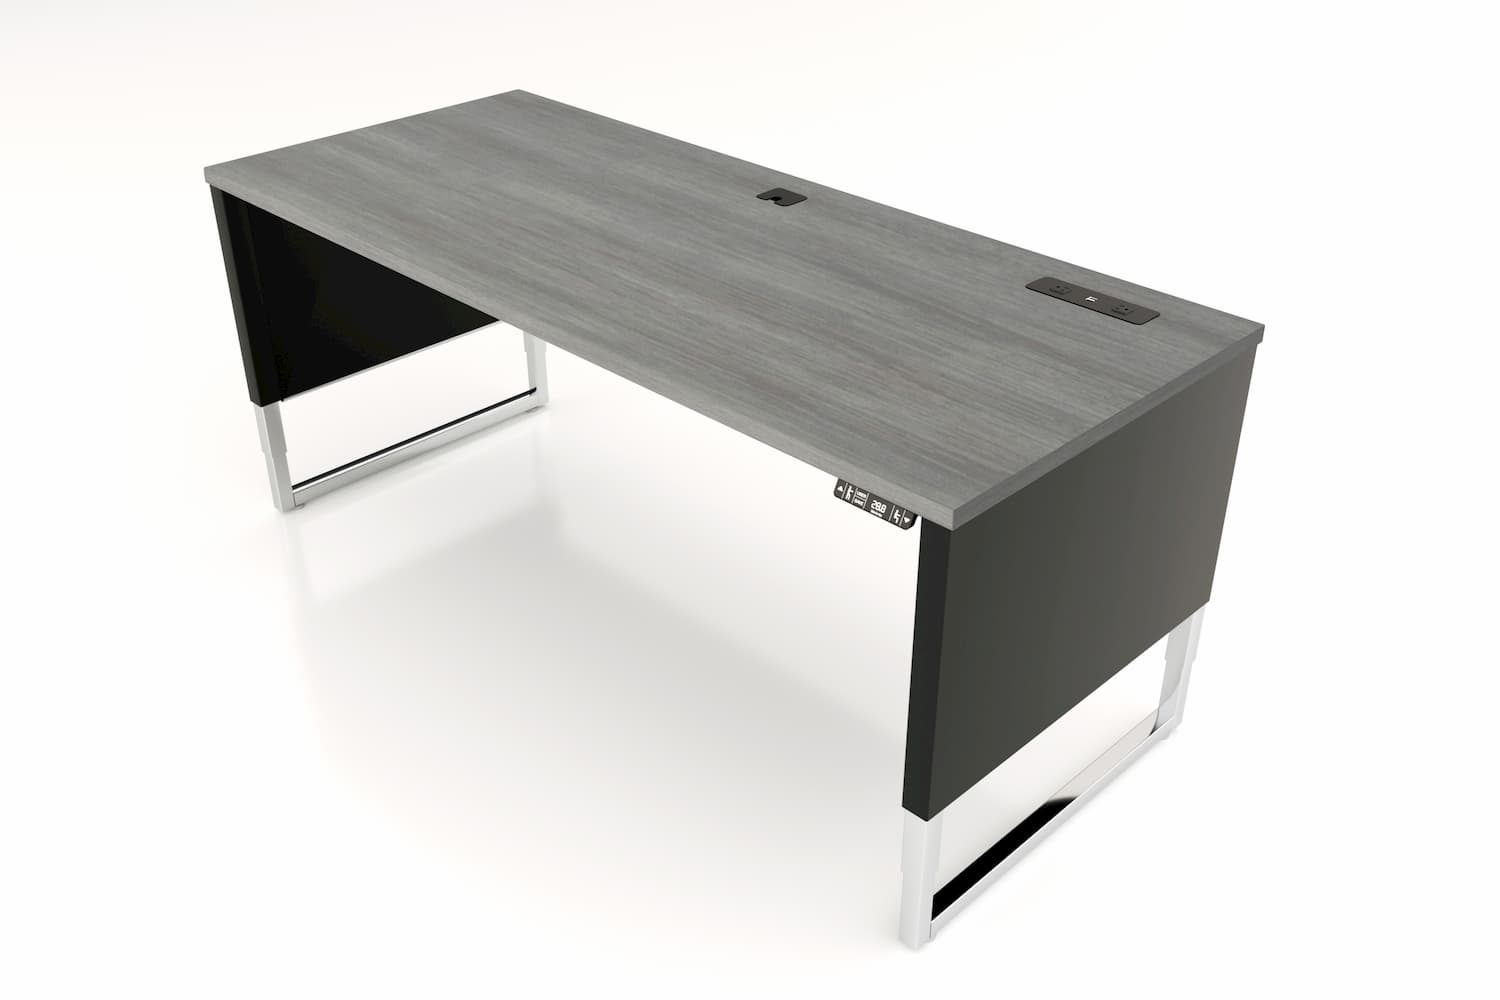 Advent-Desk-ADV-7230-BK-Custom-Top-11